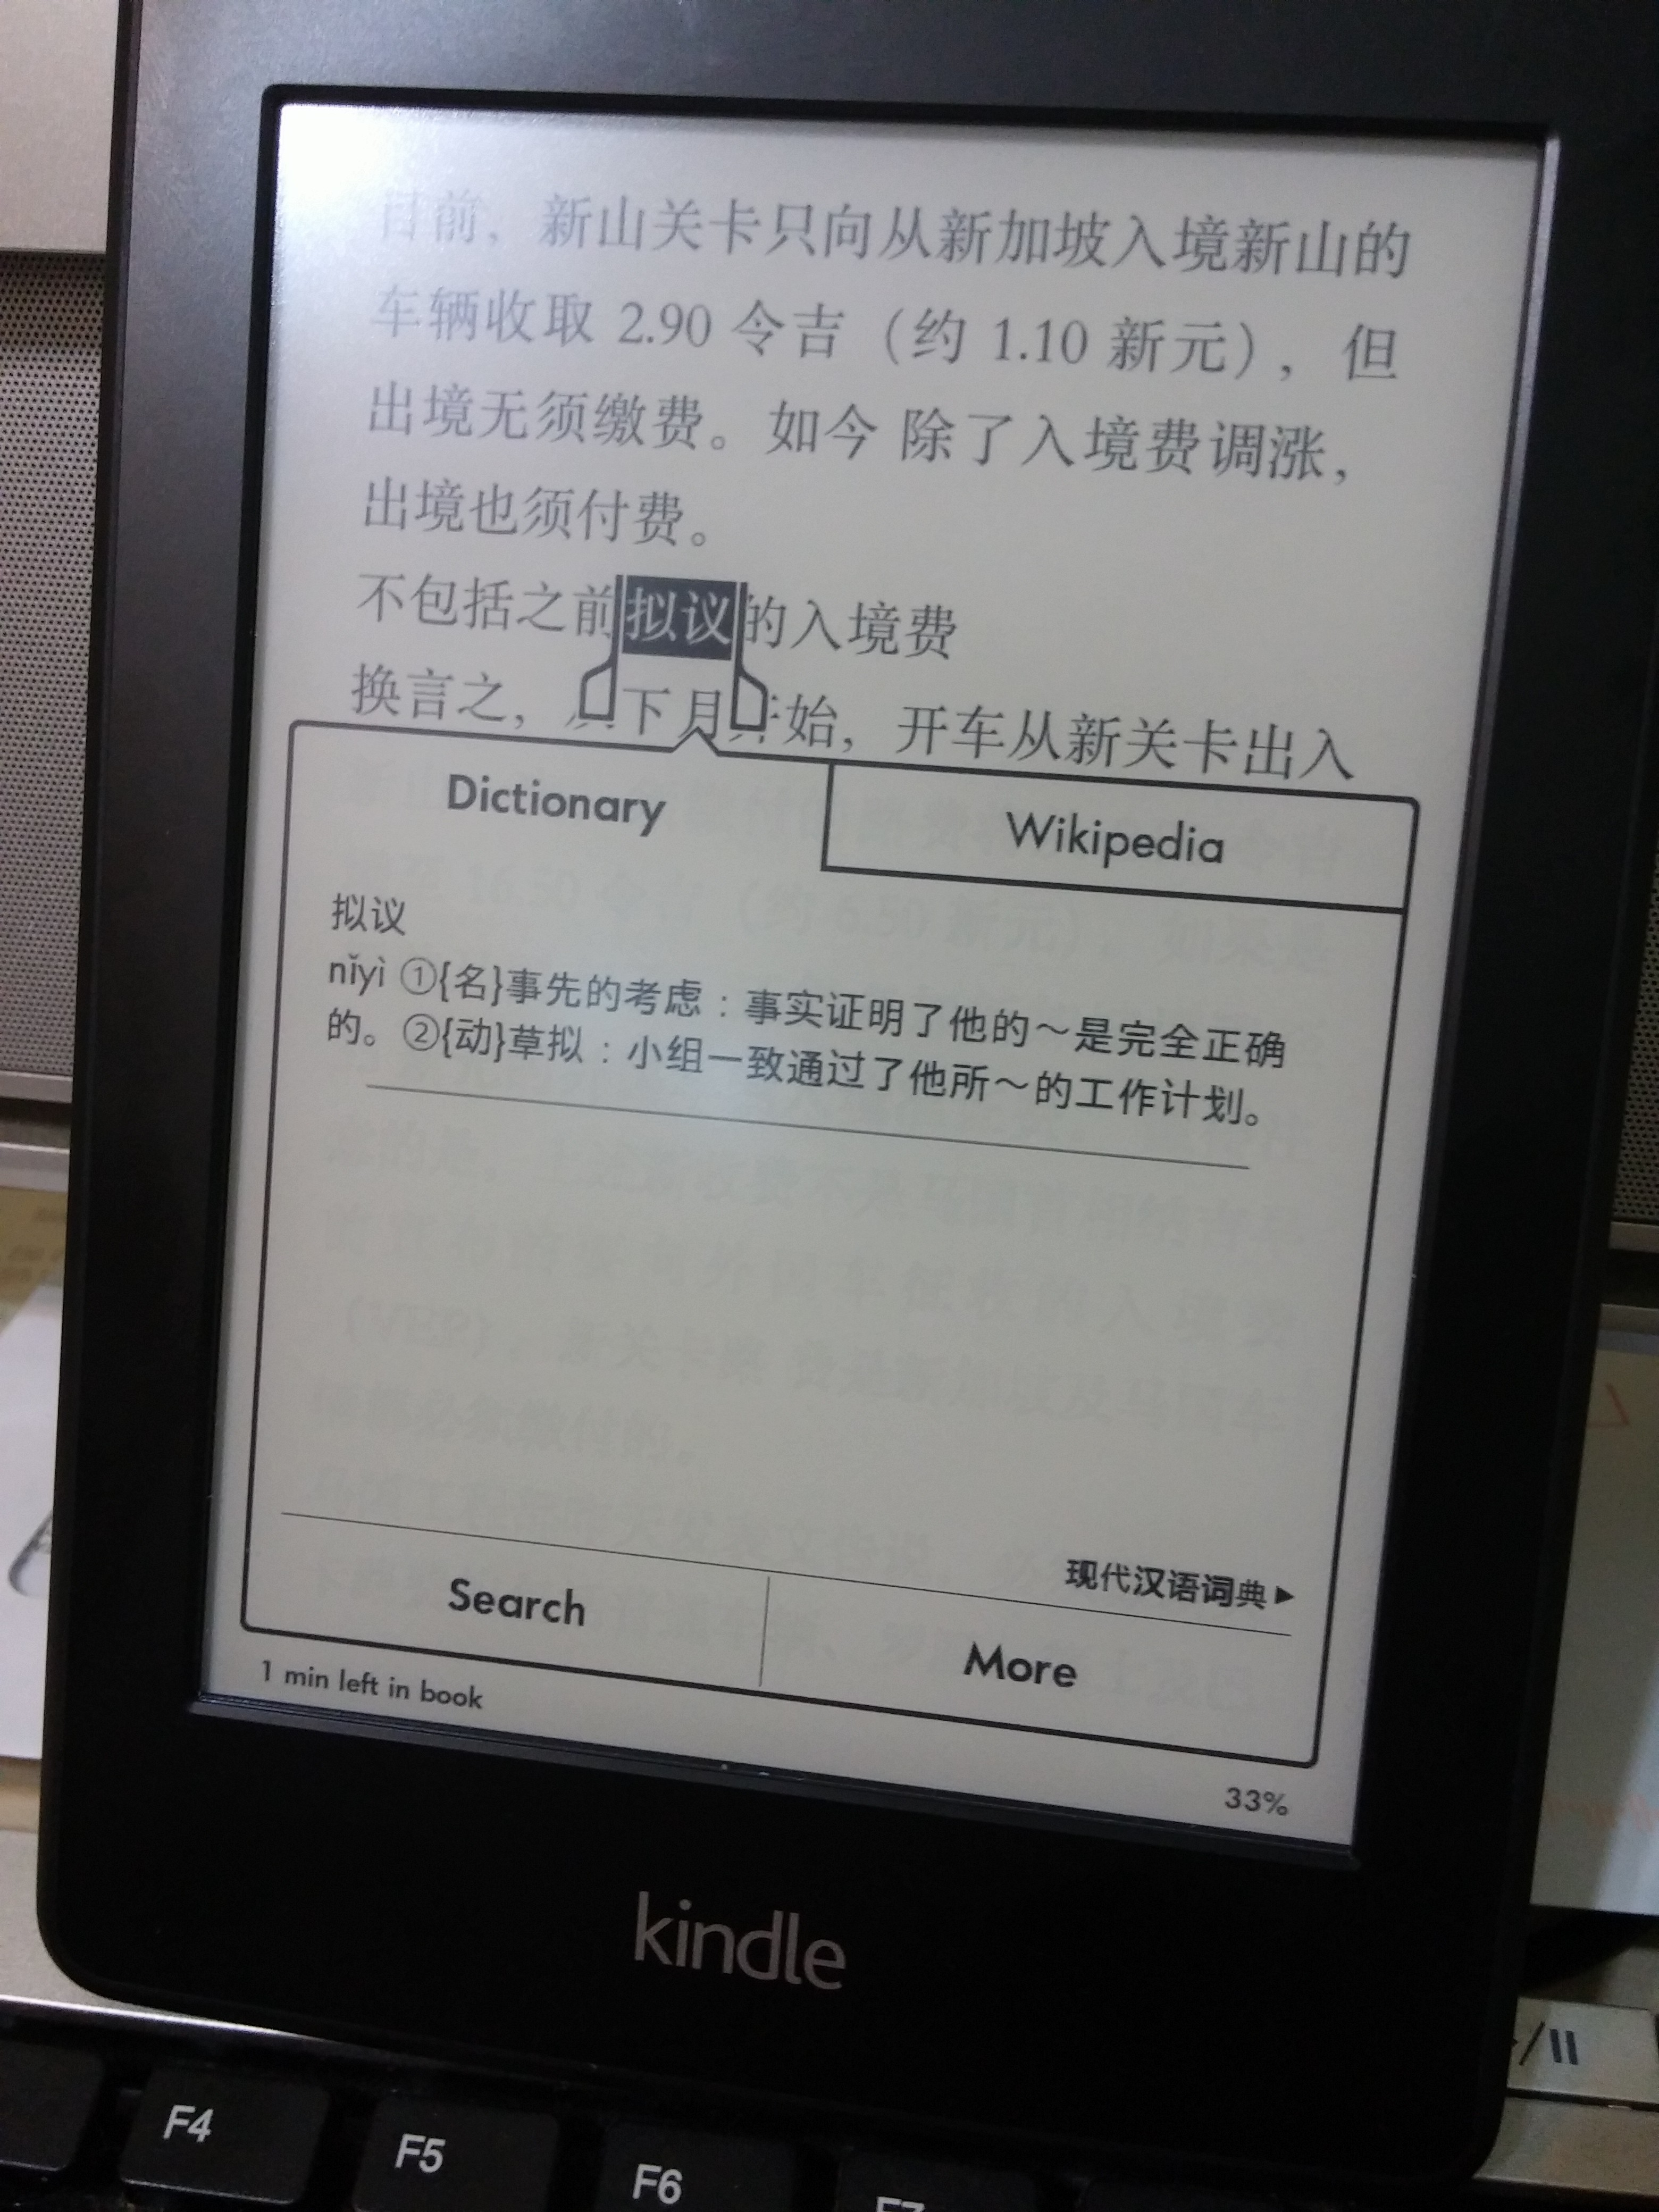 140726-kindle chinese dictionary